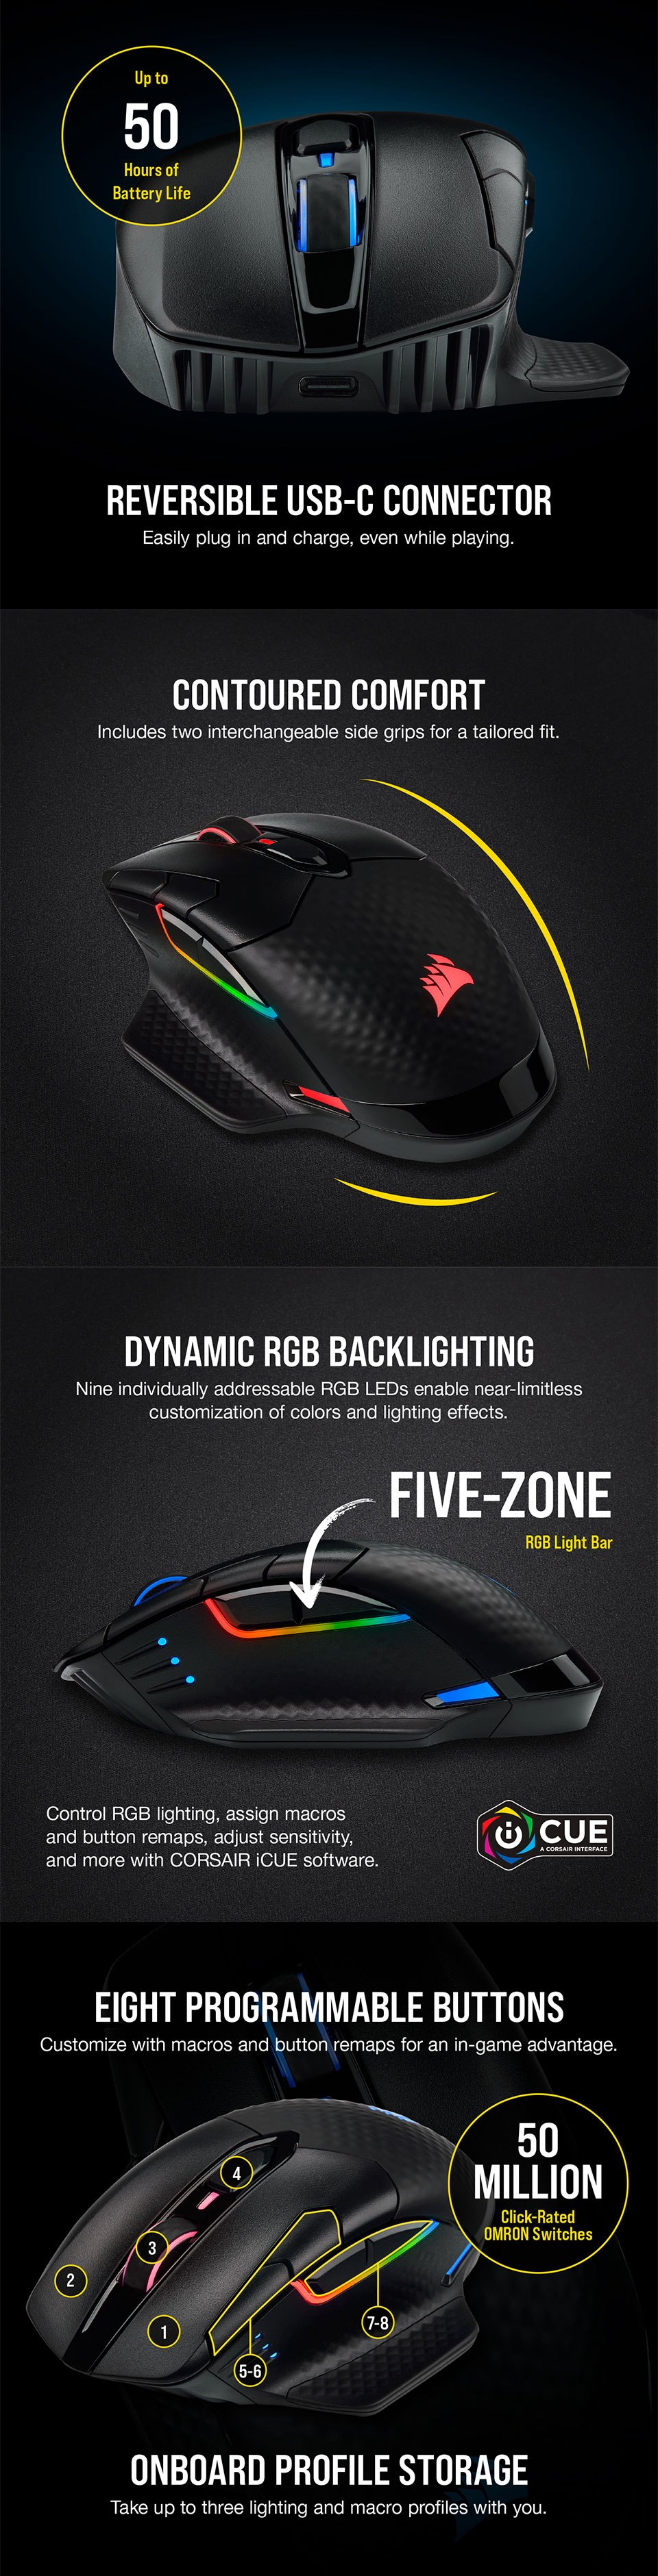 Corsair Dark Core Pro RGB Wireless Gaming Mouse features 2